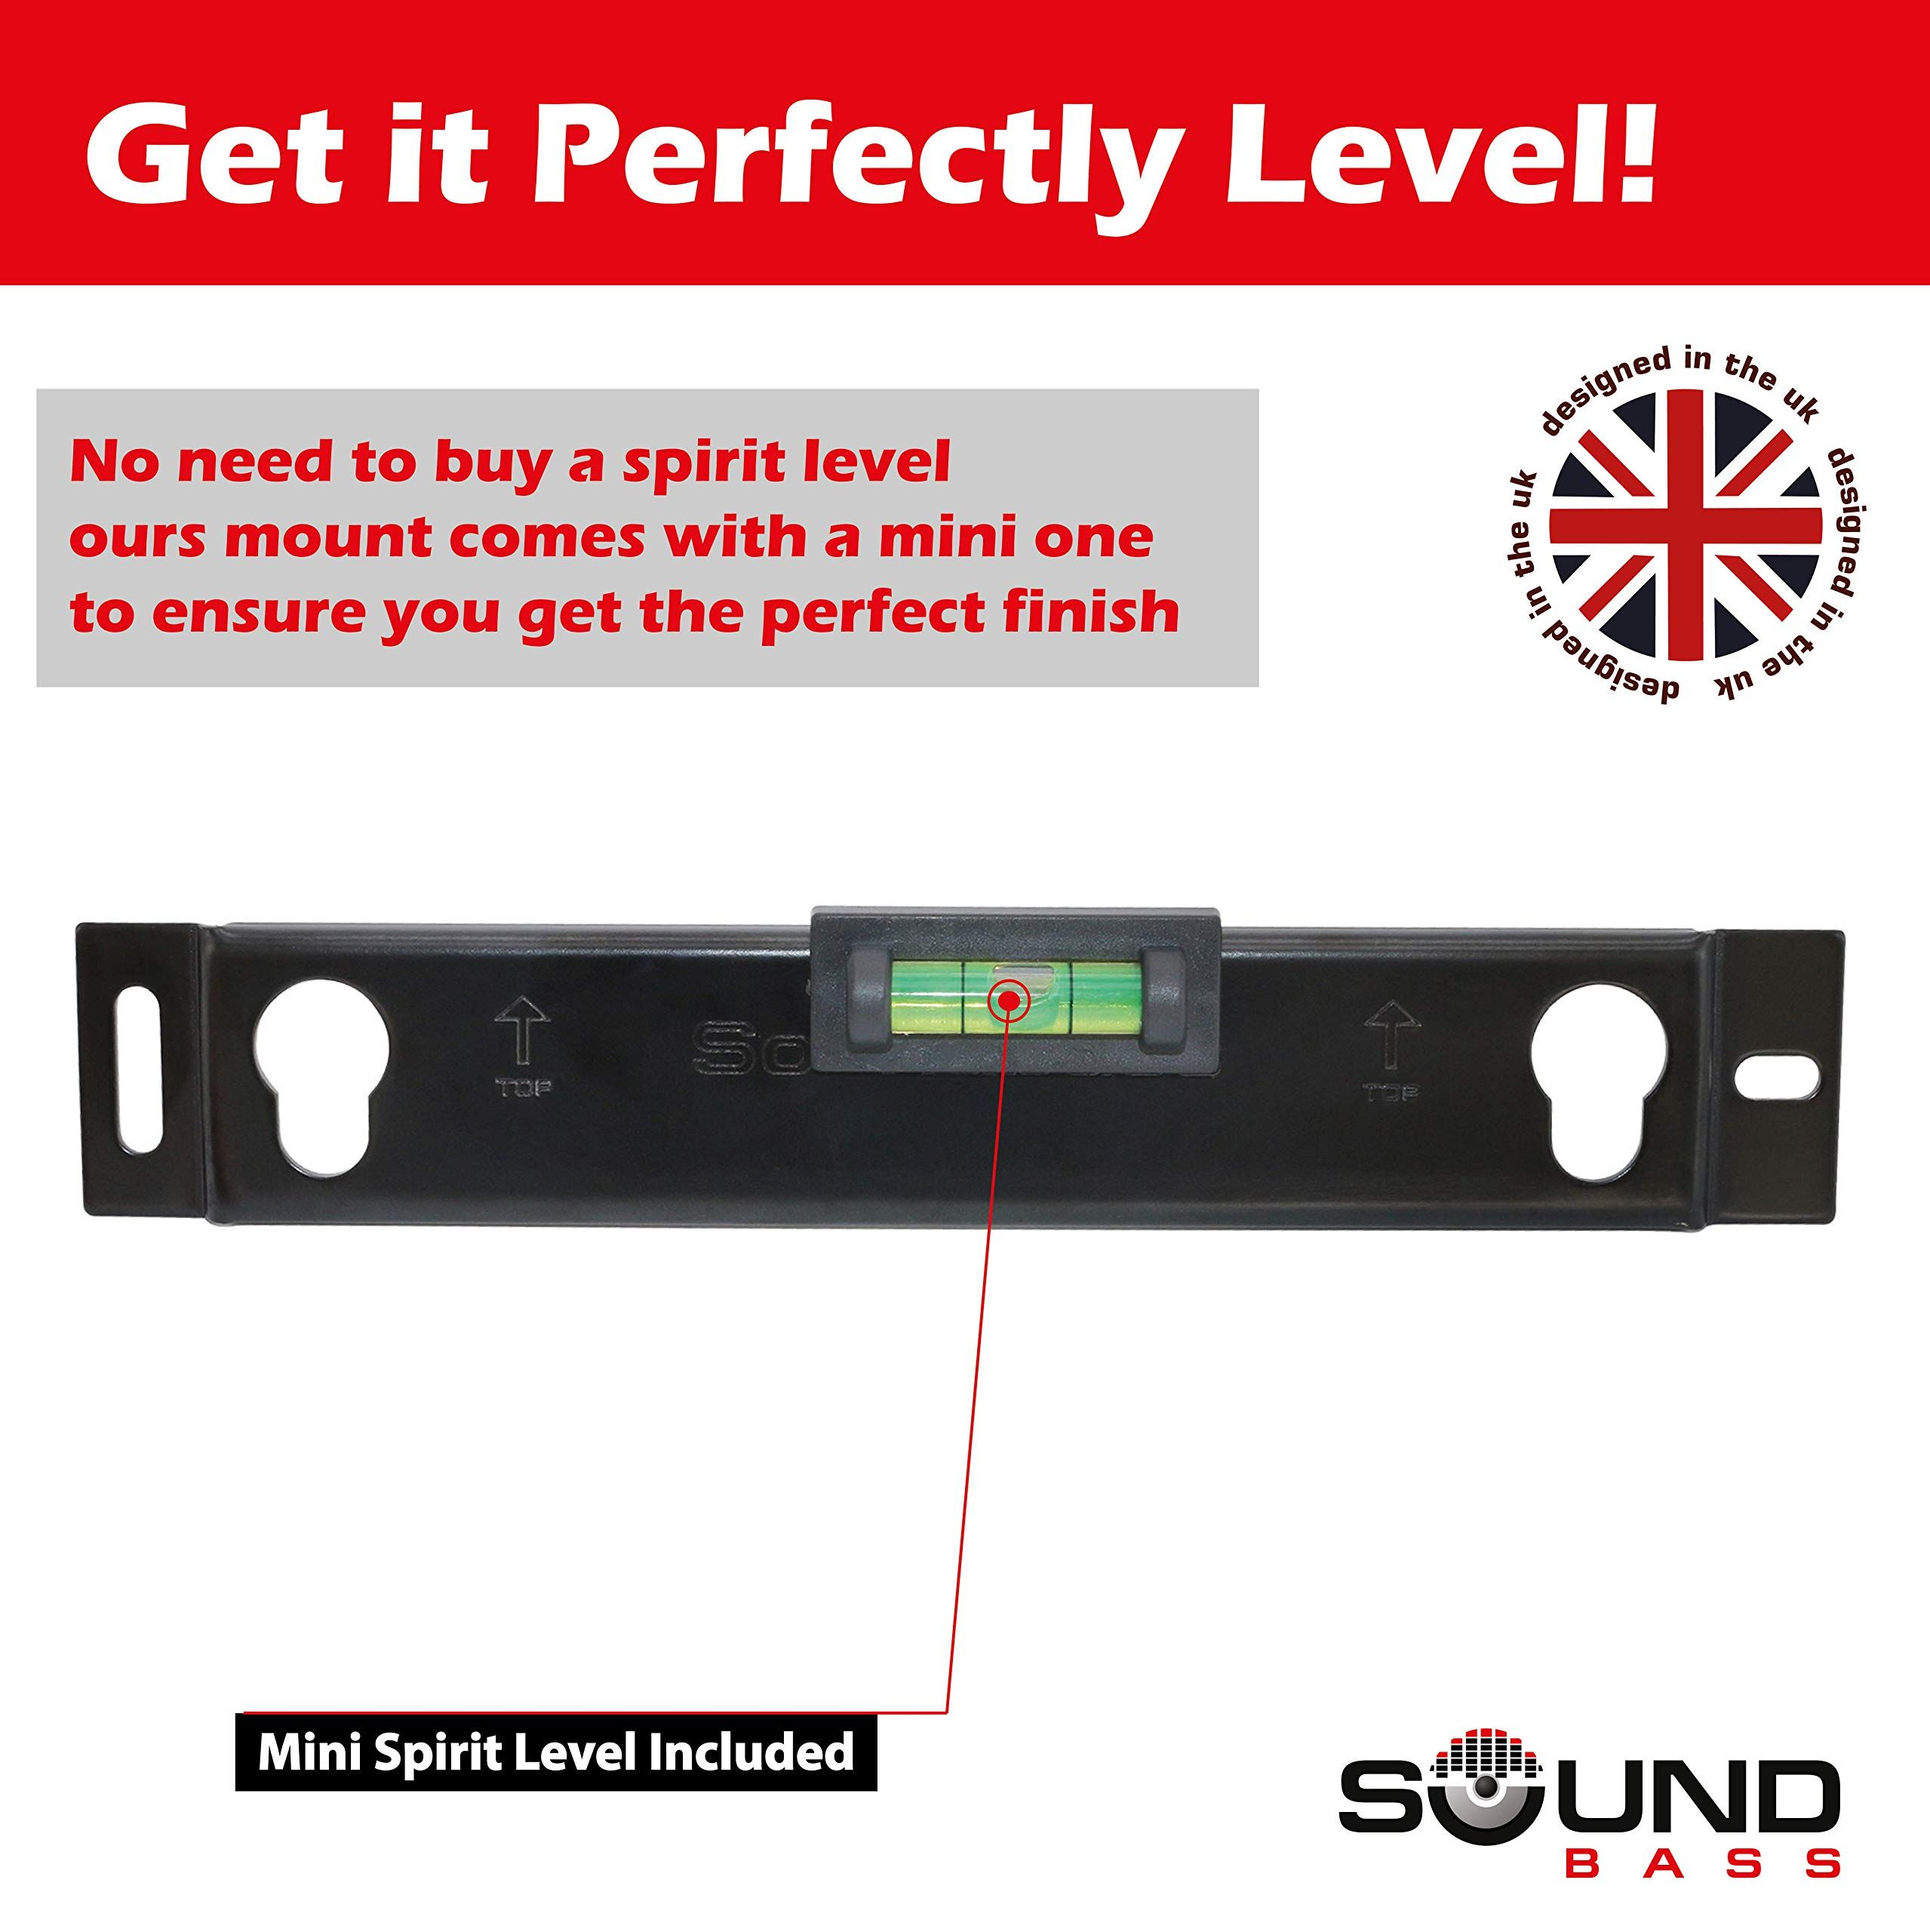 Solo 5 Wall Mount Kit For Bose Solo 5 Complete With All Mounting Hardware Designed In The Uk By Soundbass Kit Bose Mo Speaker Wall Mounts Design Mounting